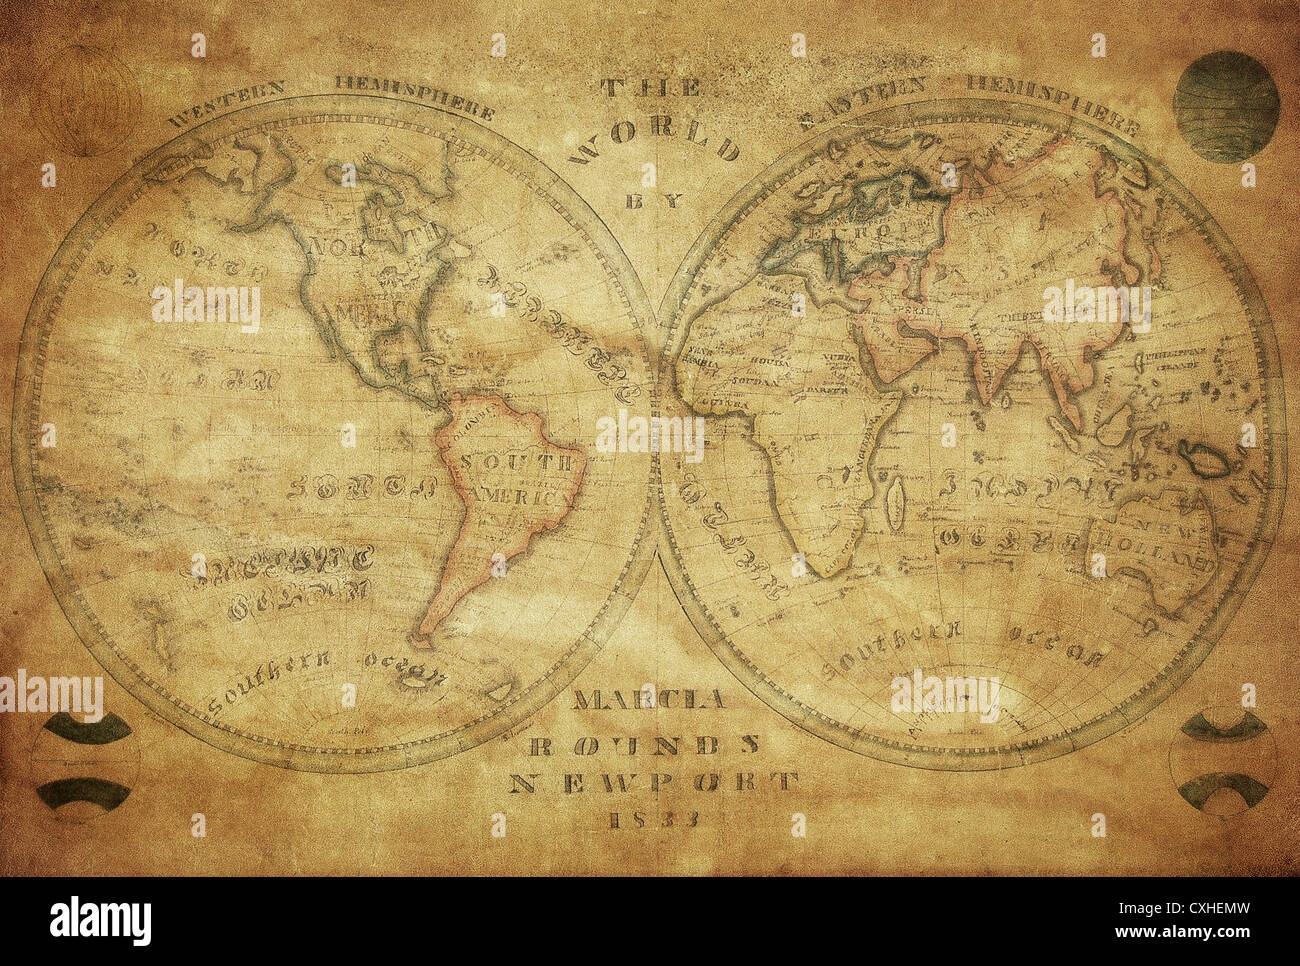 vintage map of the world 1833 - Stock Image